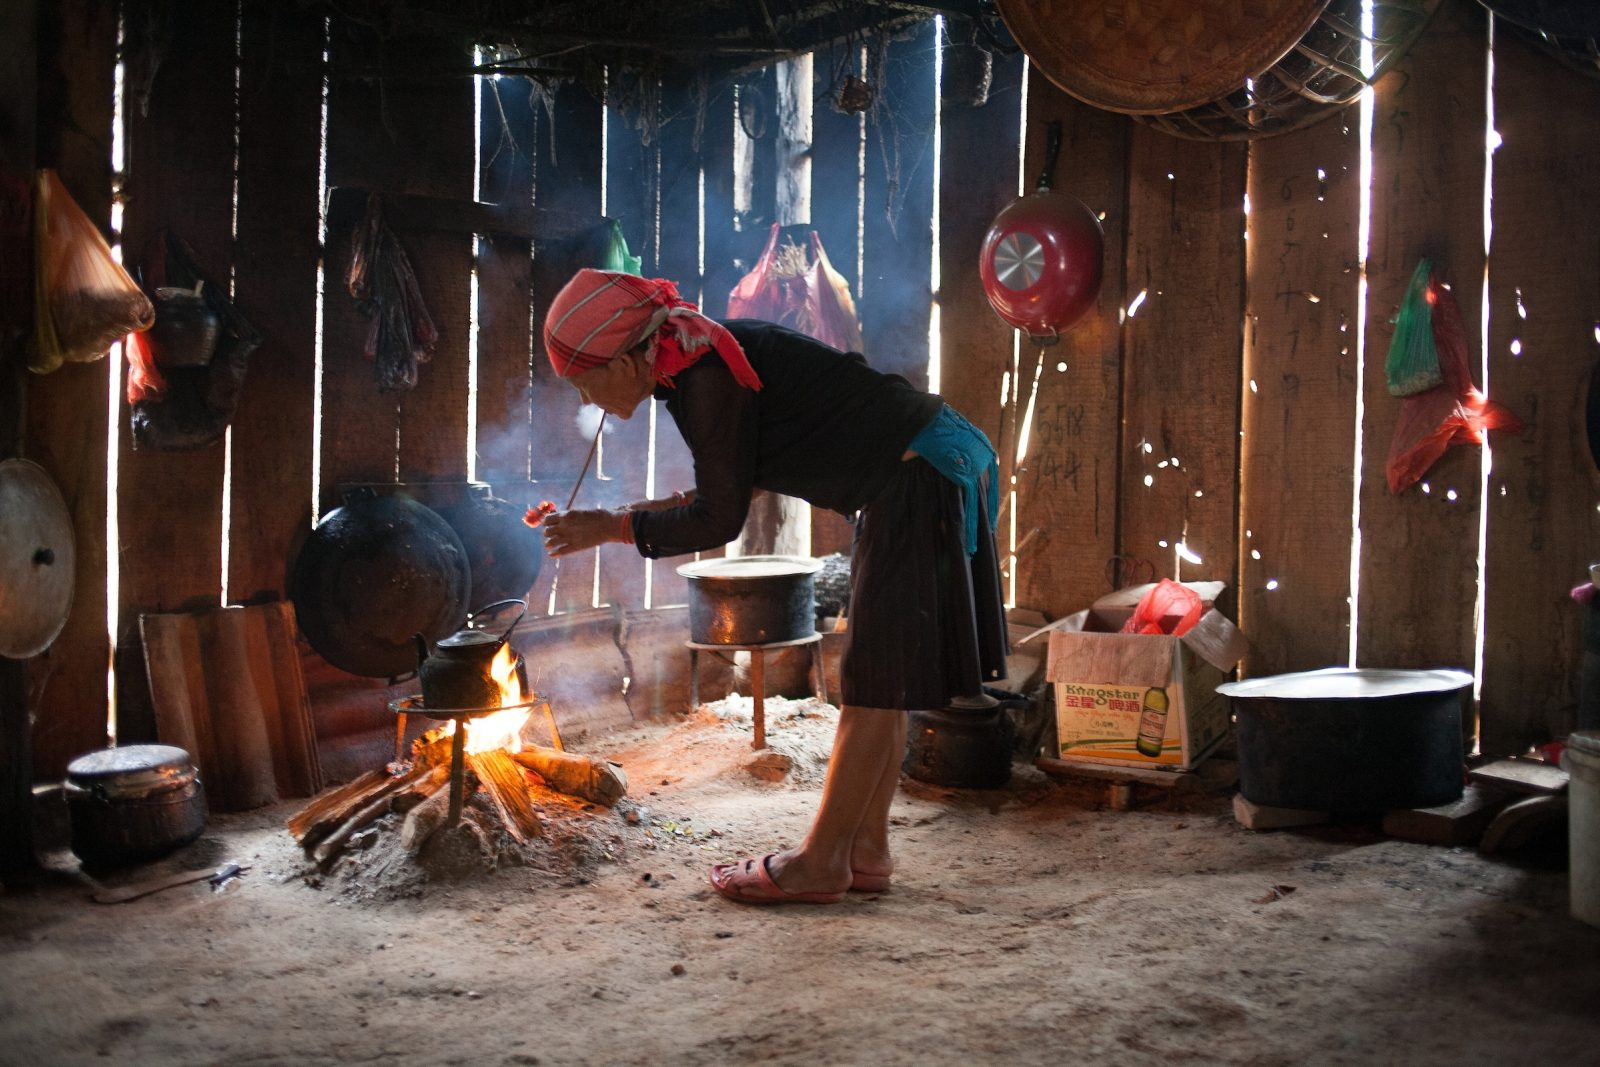 The Food of Shangri-La: Cooking Up Yak Meat, Pickled Bamboo and Potato Pancakes in China's Remote Yunnan Province